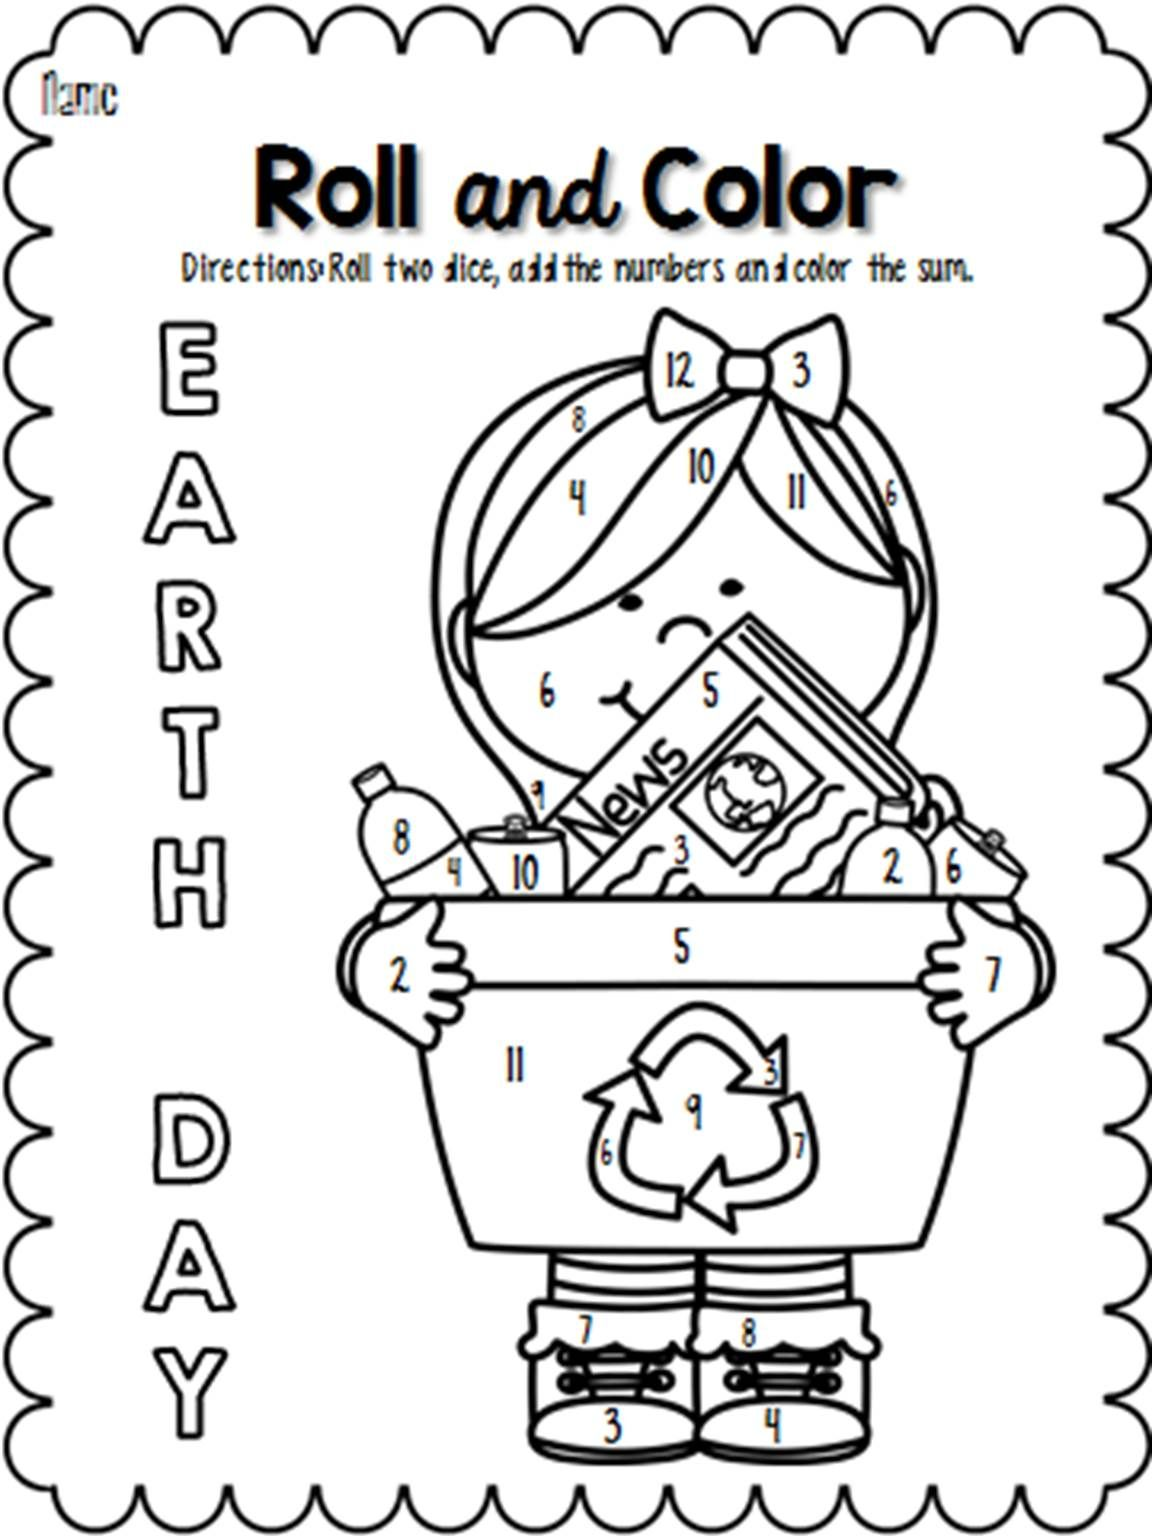 Free coloring pages for earth day - Color For Fun Earth Day Coloring Pages Printables